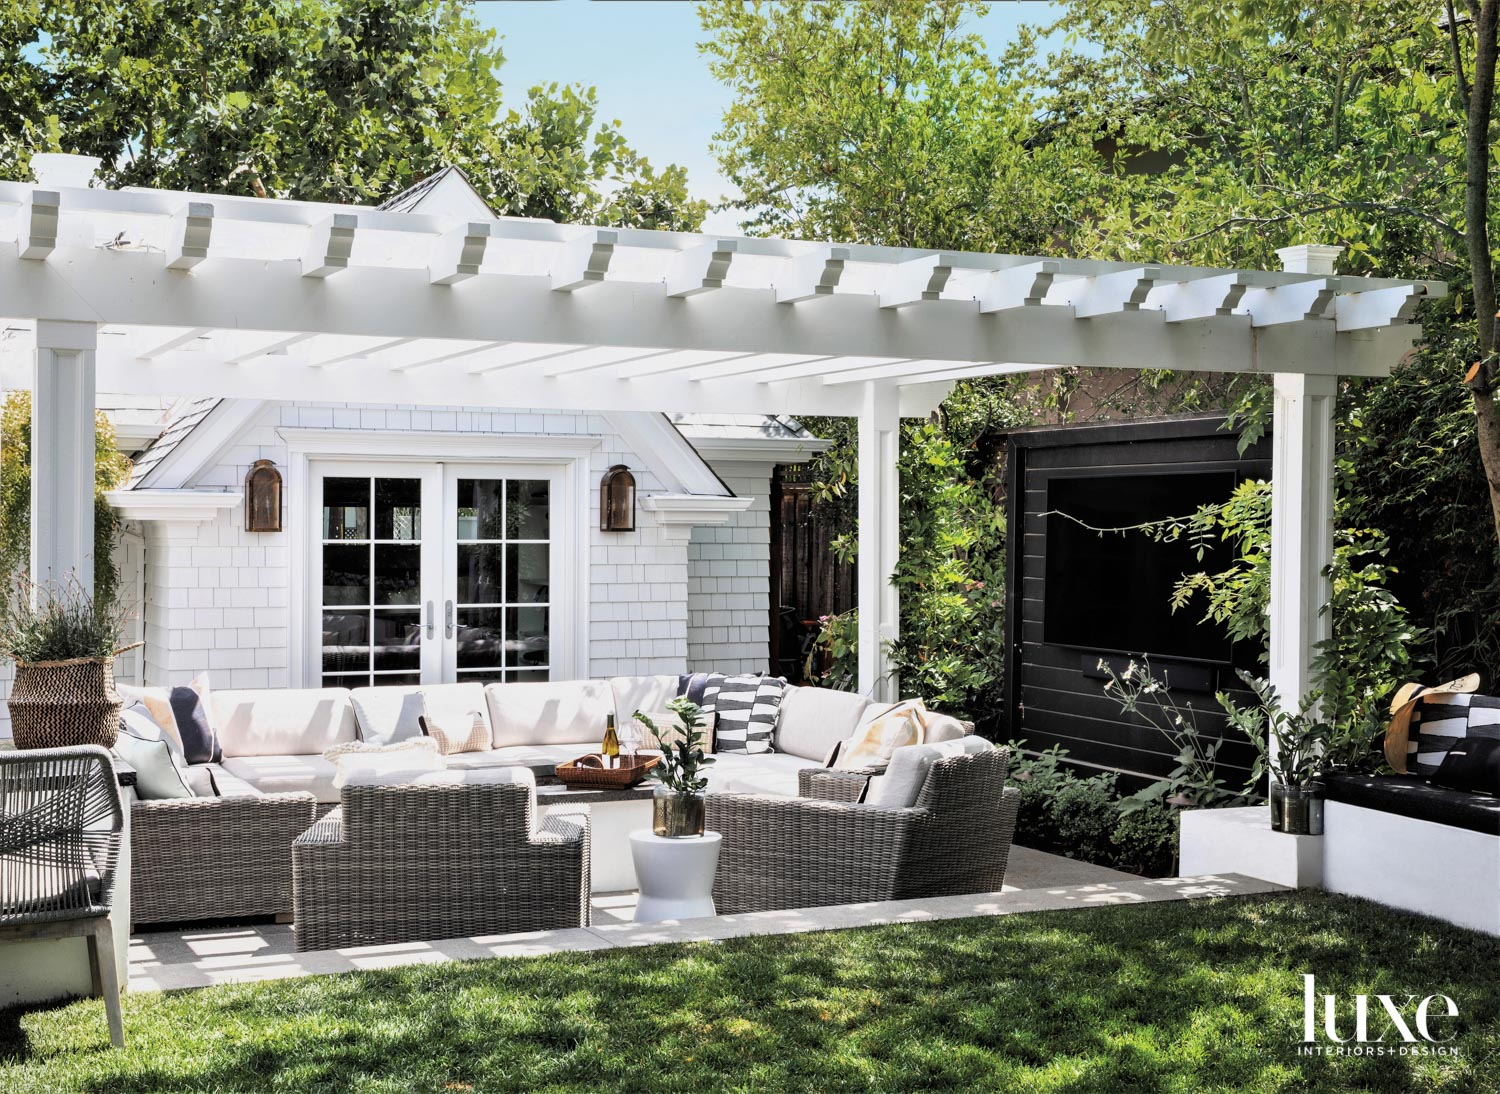 An outdoor seating area has...